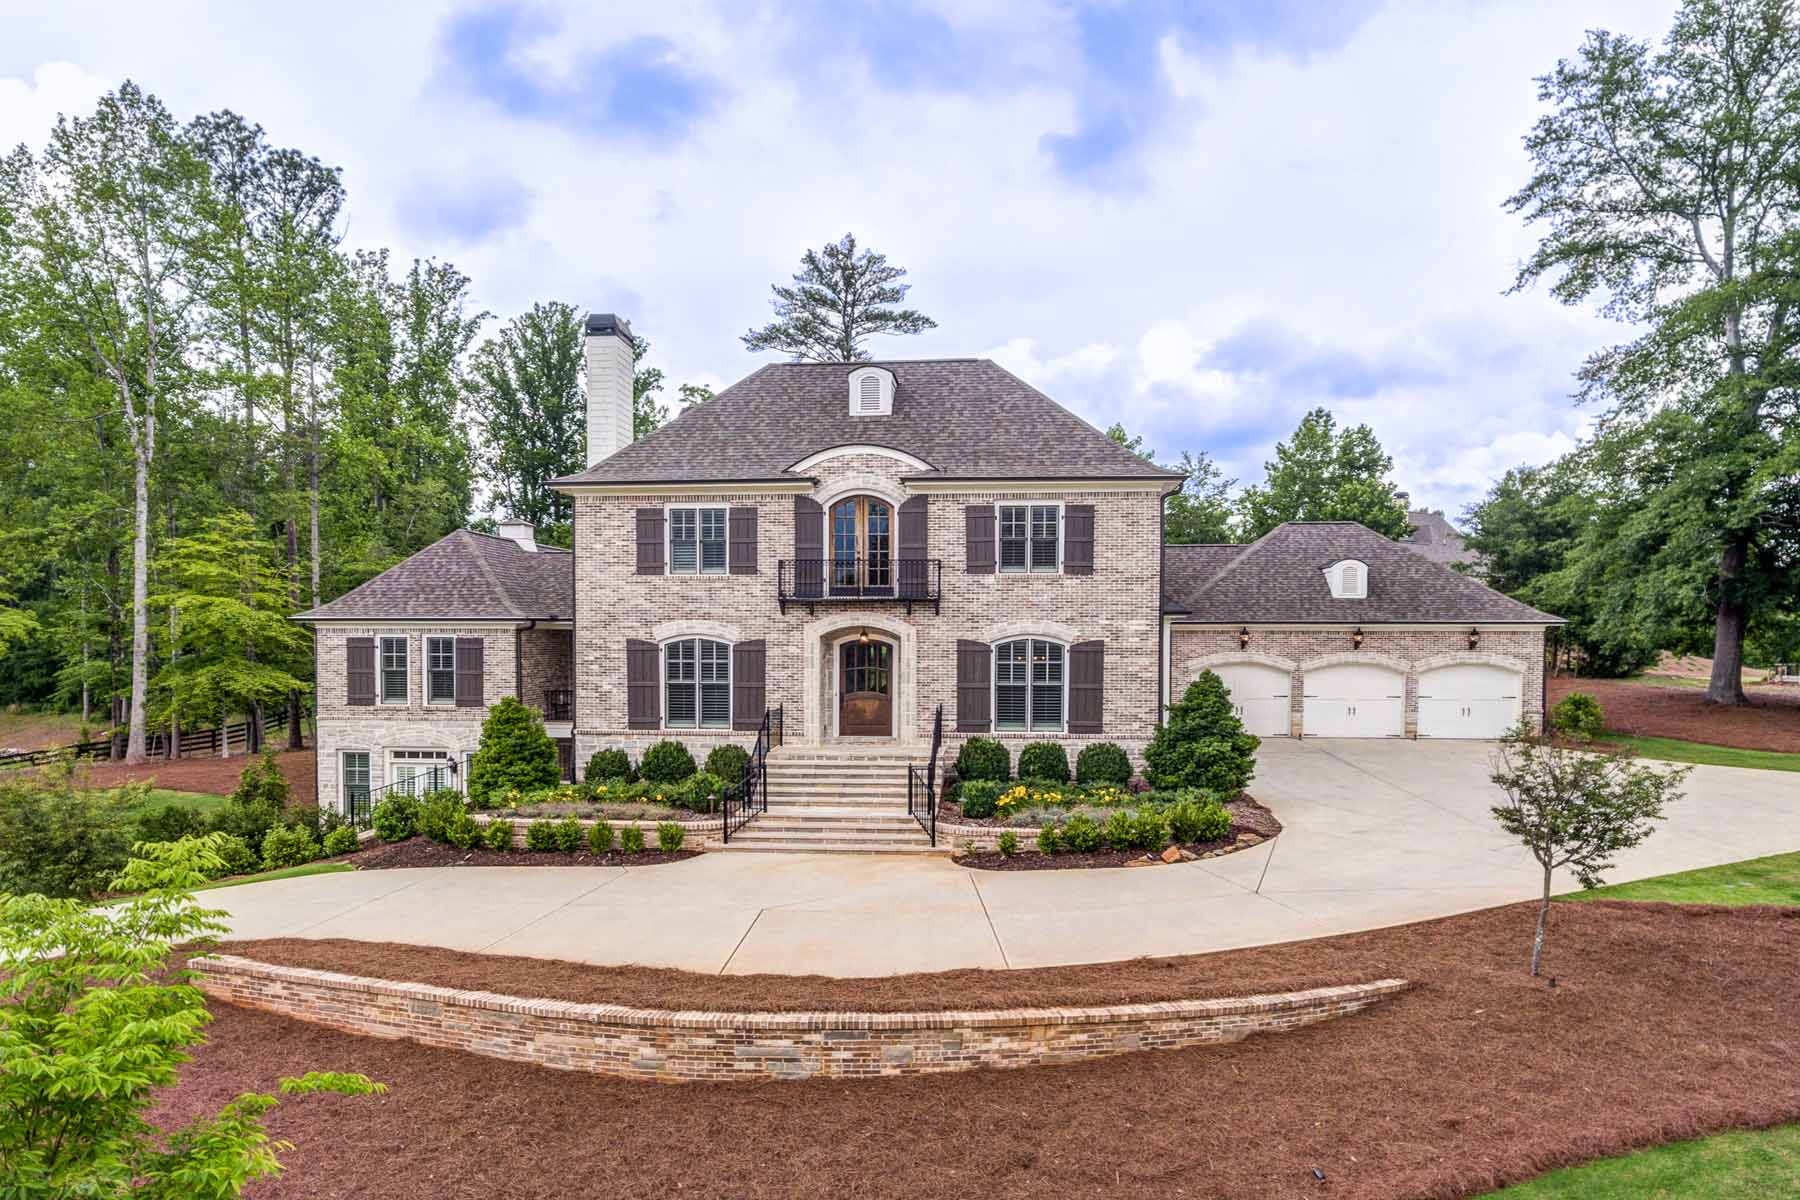 Single Family Home for Sale at Exceptional Upgrades and Finishes 3020 Haven Reserve Milton, Georgia, 30004 United States